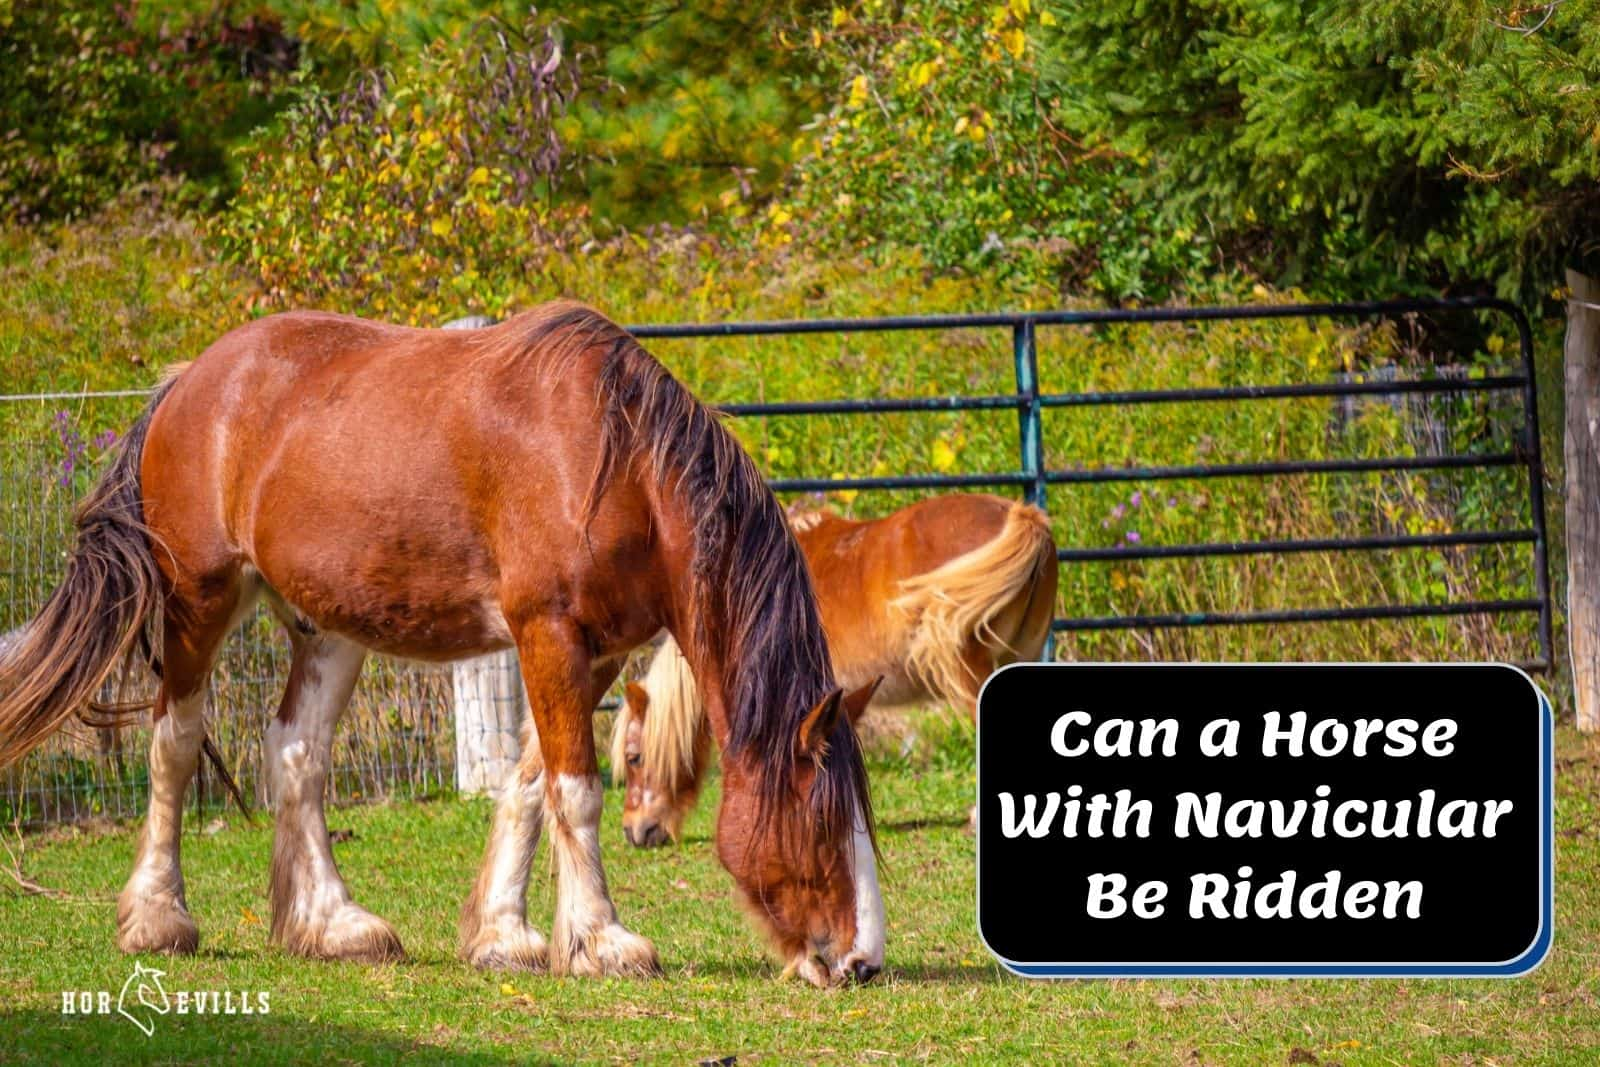 A horse with navicular eating grasses, can horse with navicular be ridden?